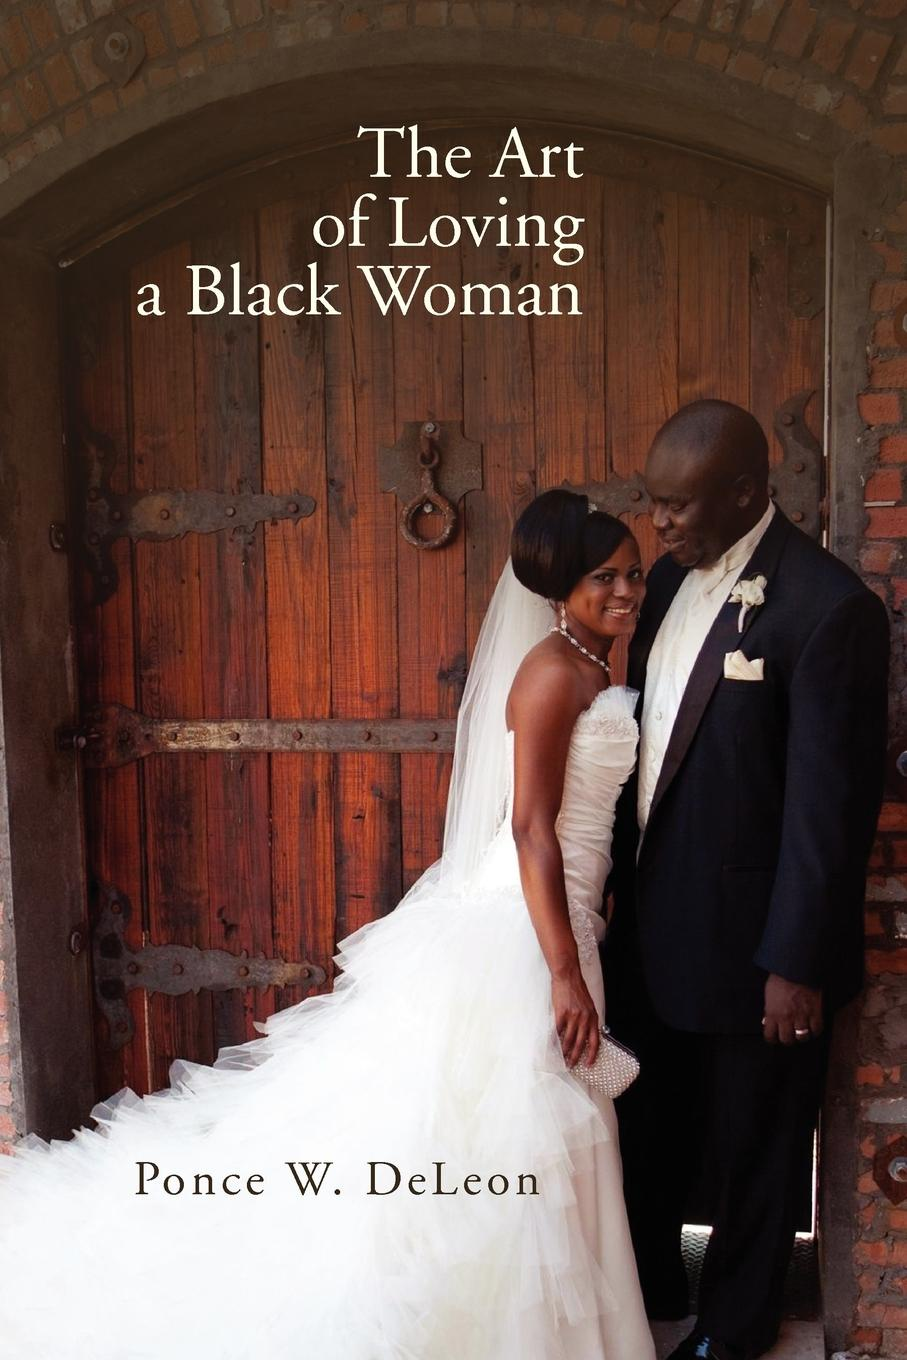 Ponce W. DeLeon The Art of Loving a Black Woman marc de smedt chinese art of loving